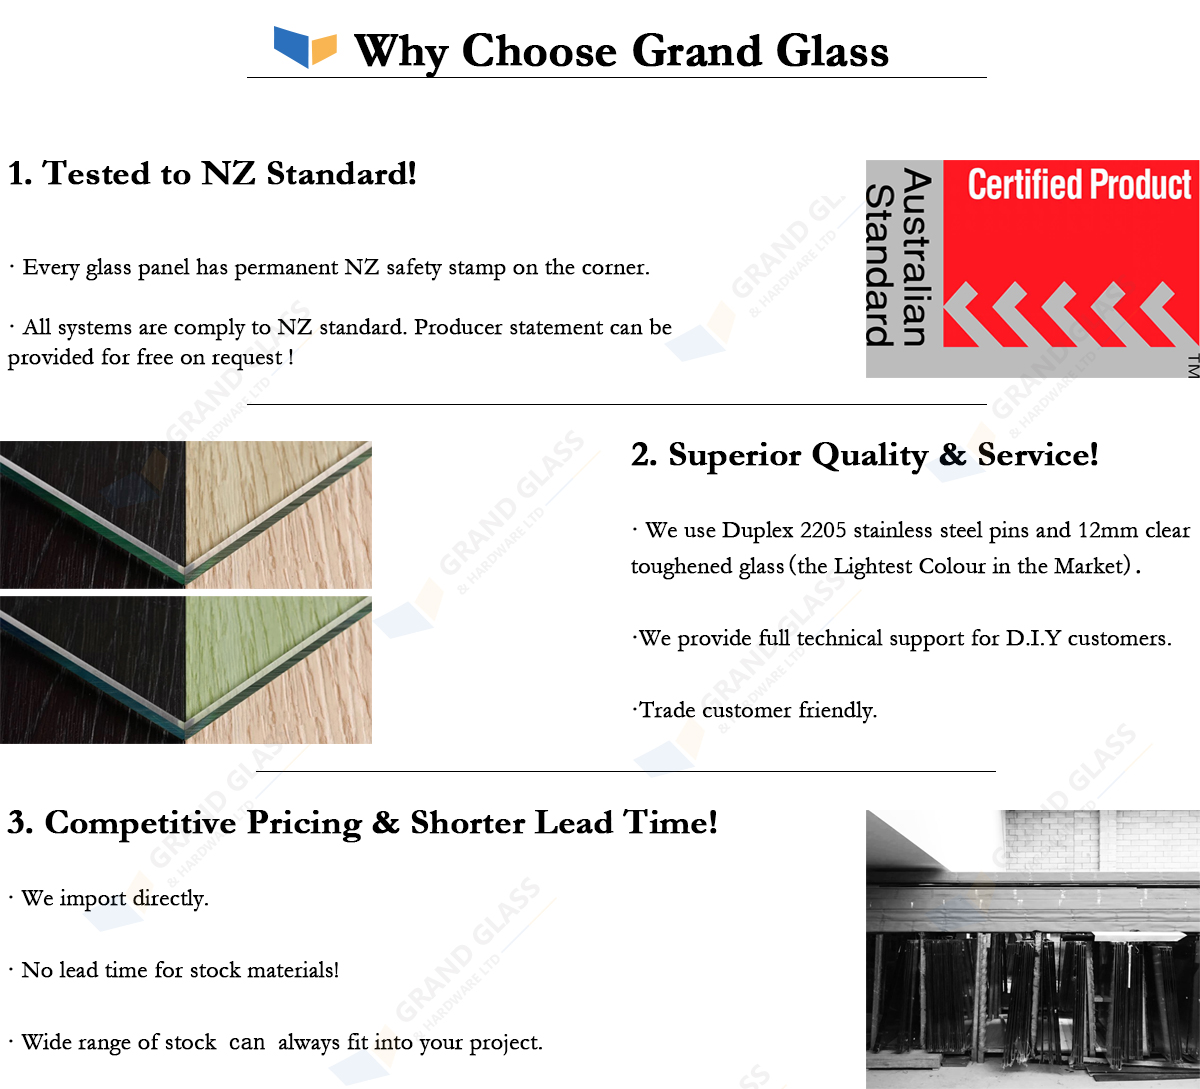 why-choose-grand-glass-4.jpg